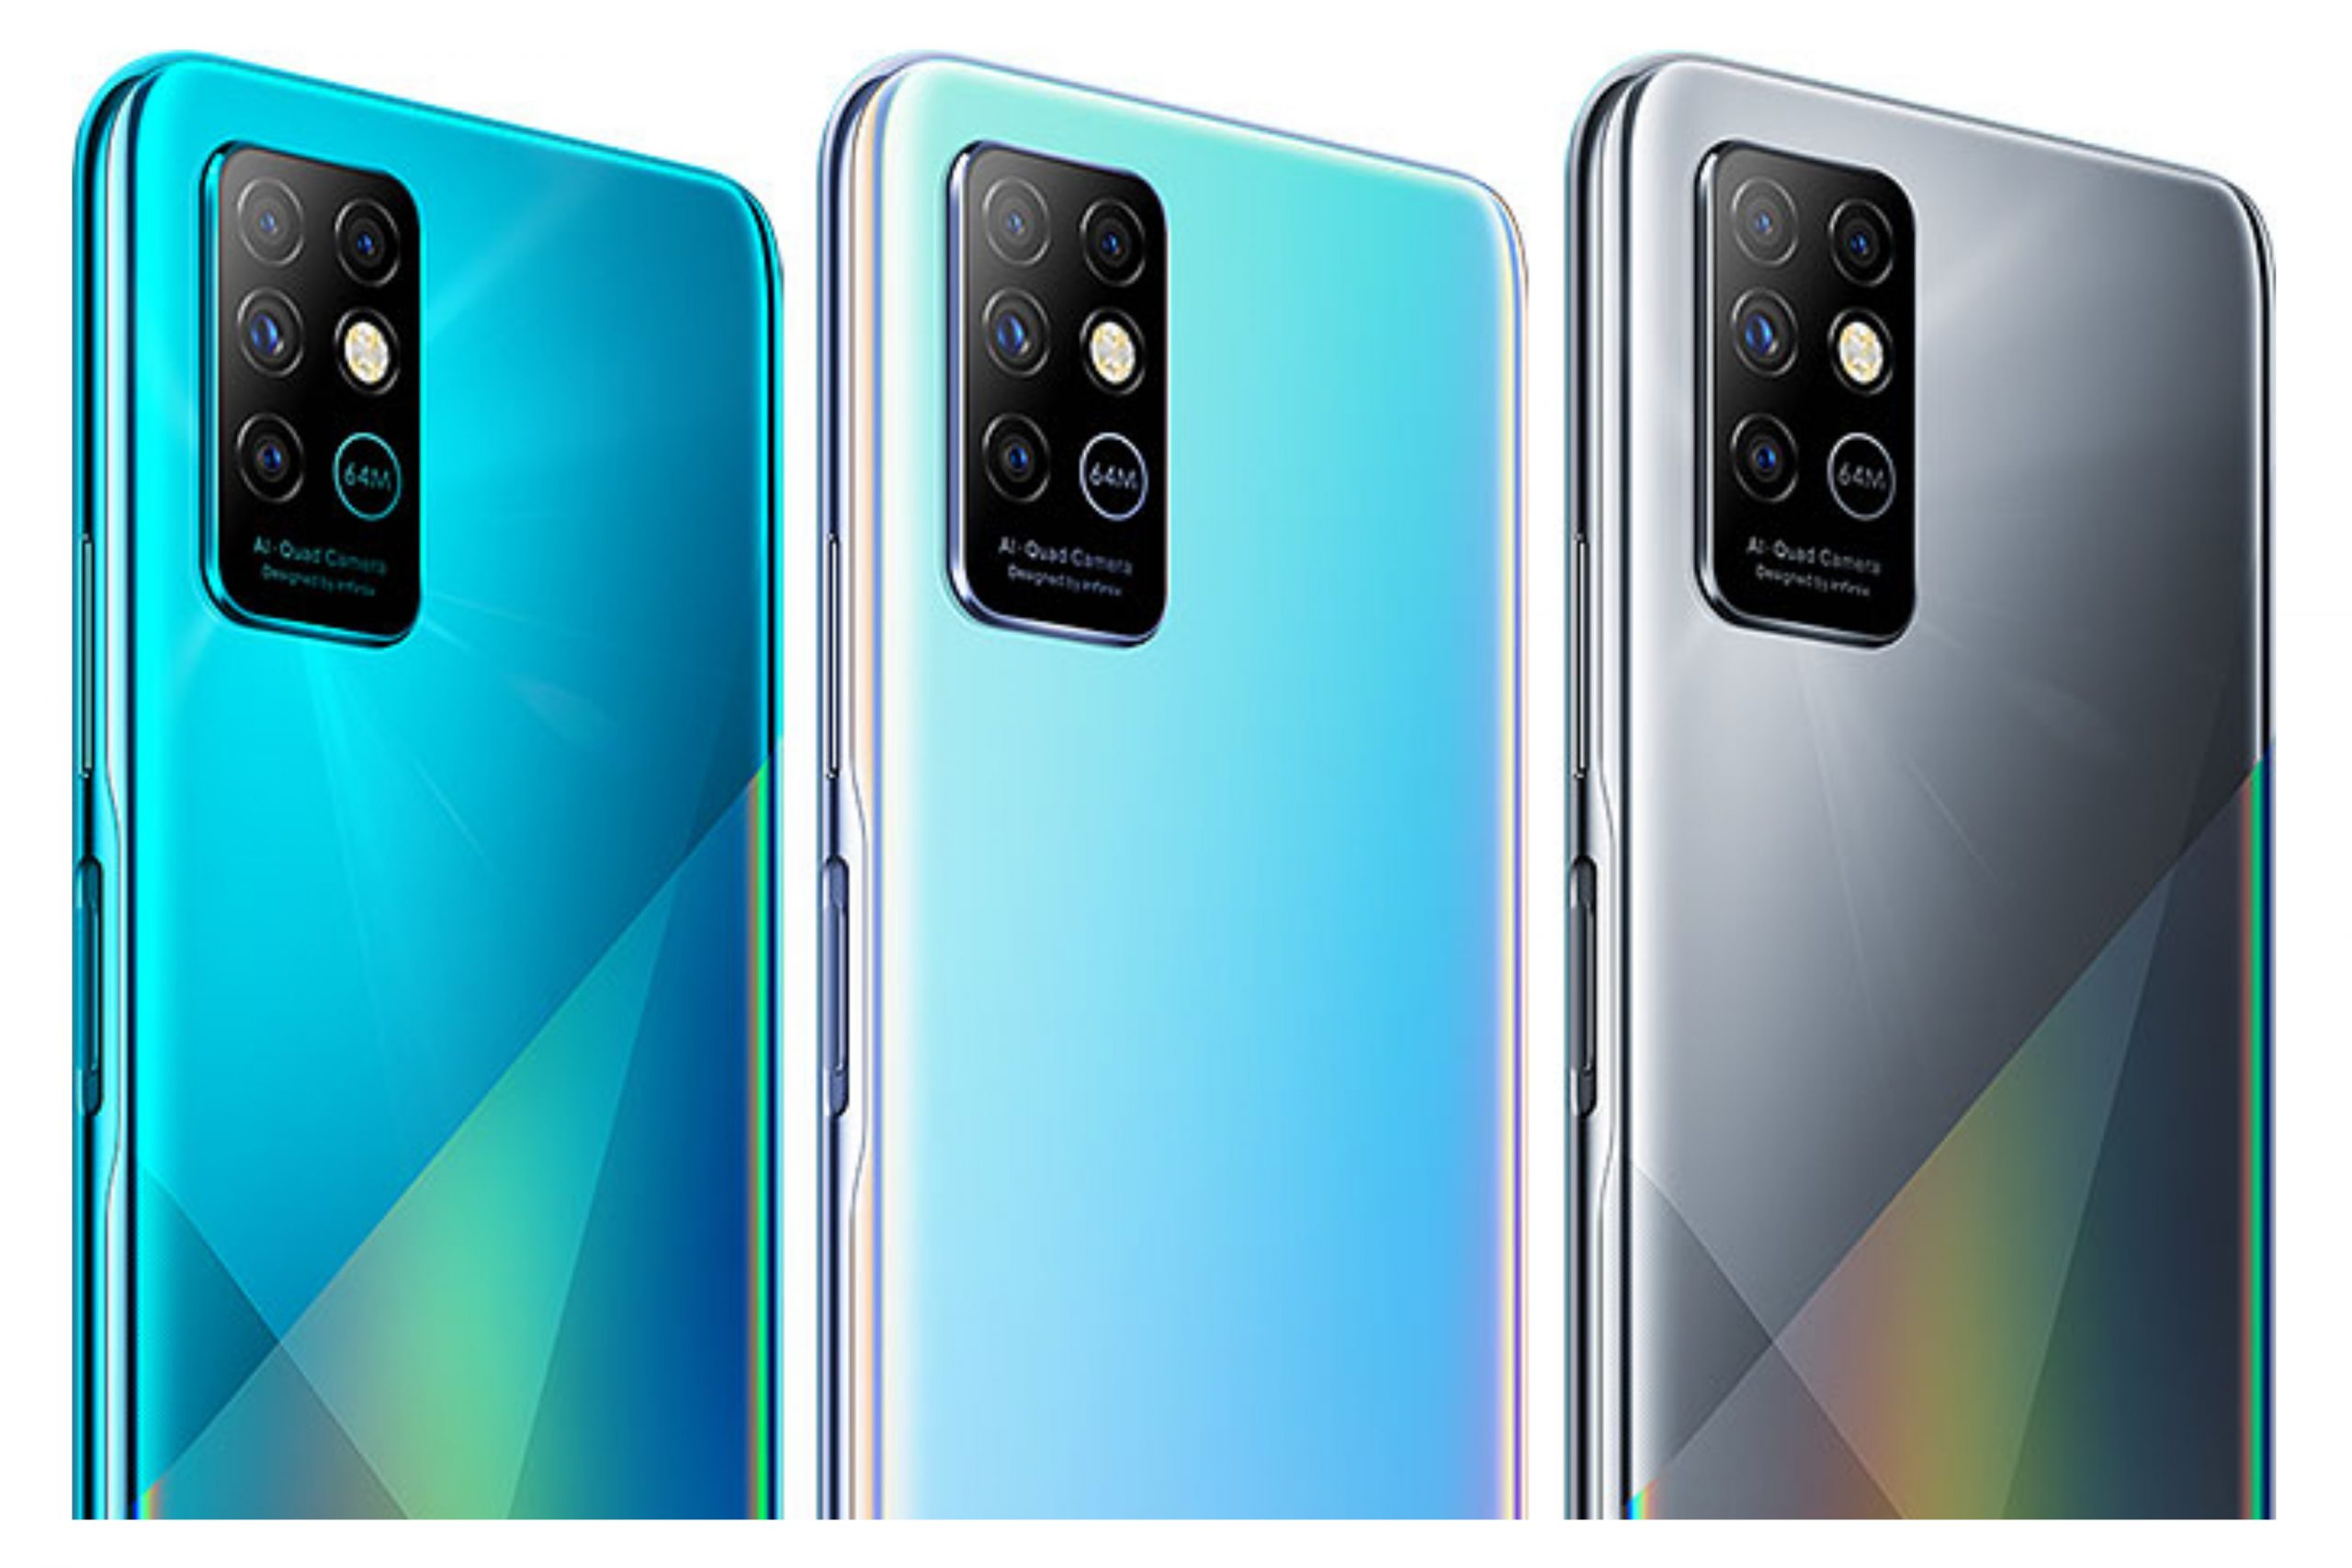 Infinix Note 8 Price in Pakistan and Specs